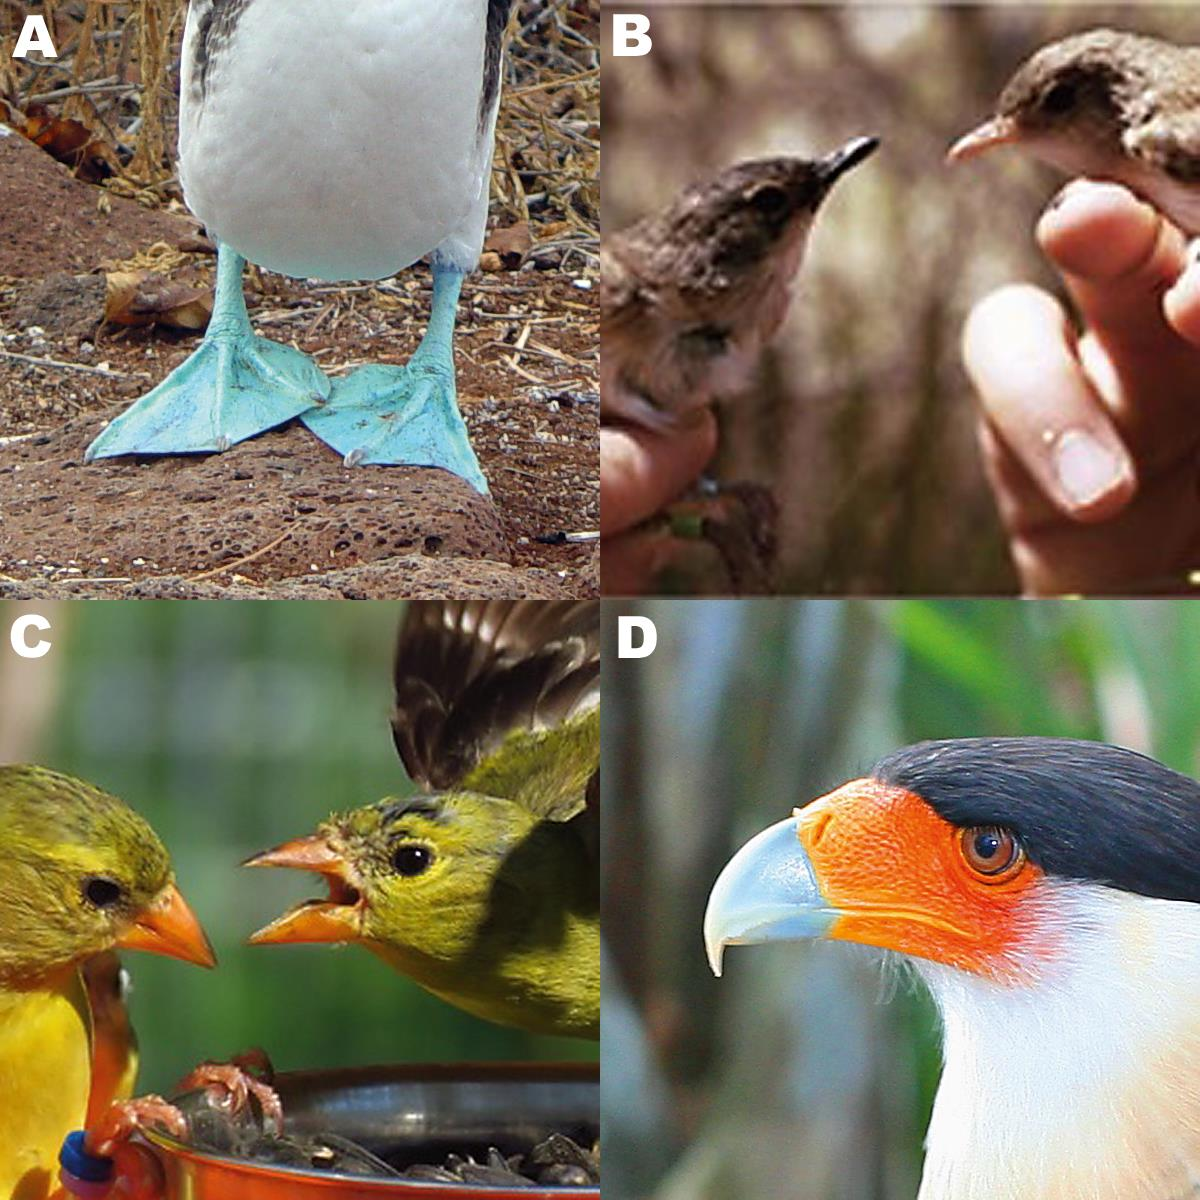 The role of bare parts in avian signaling